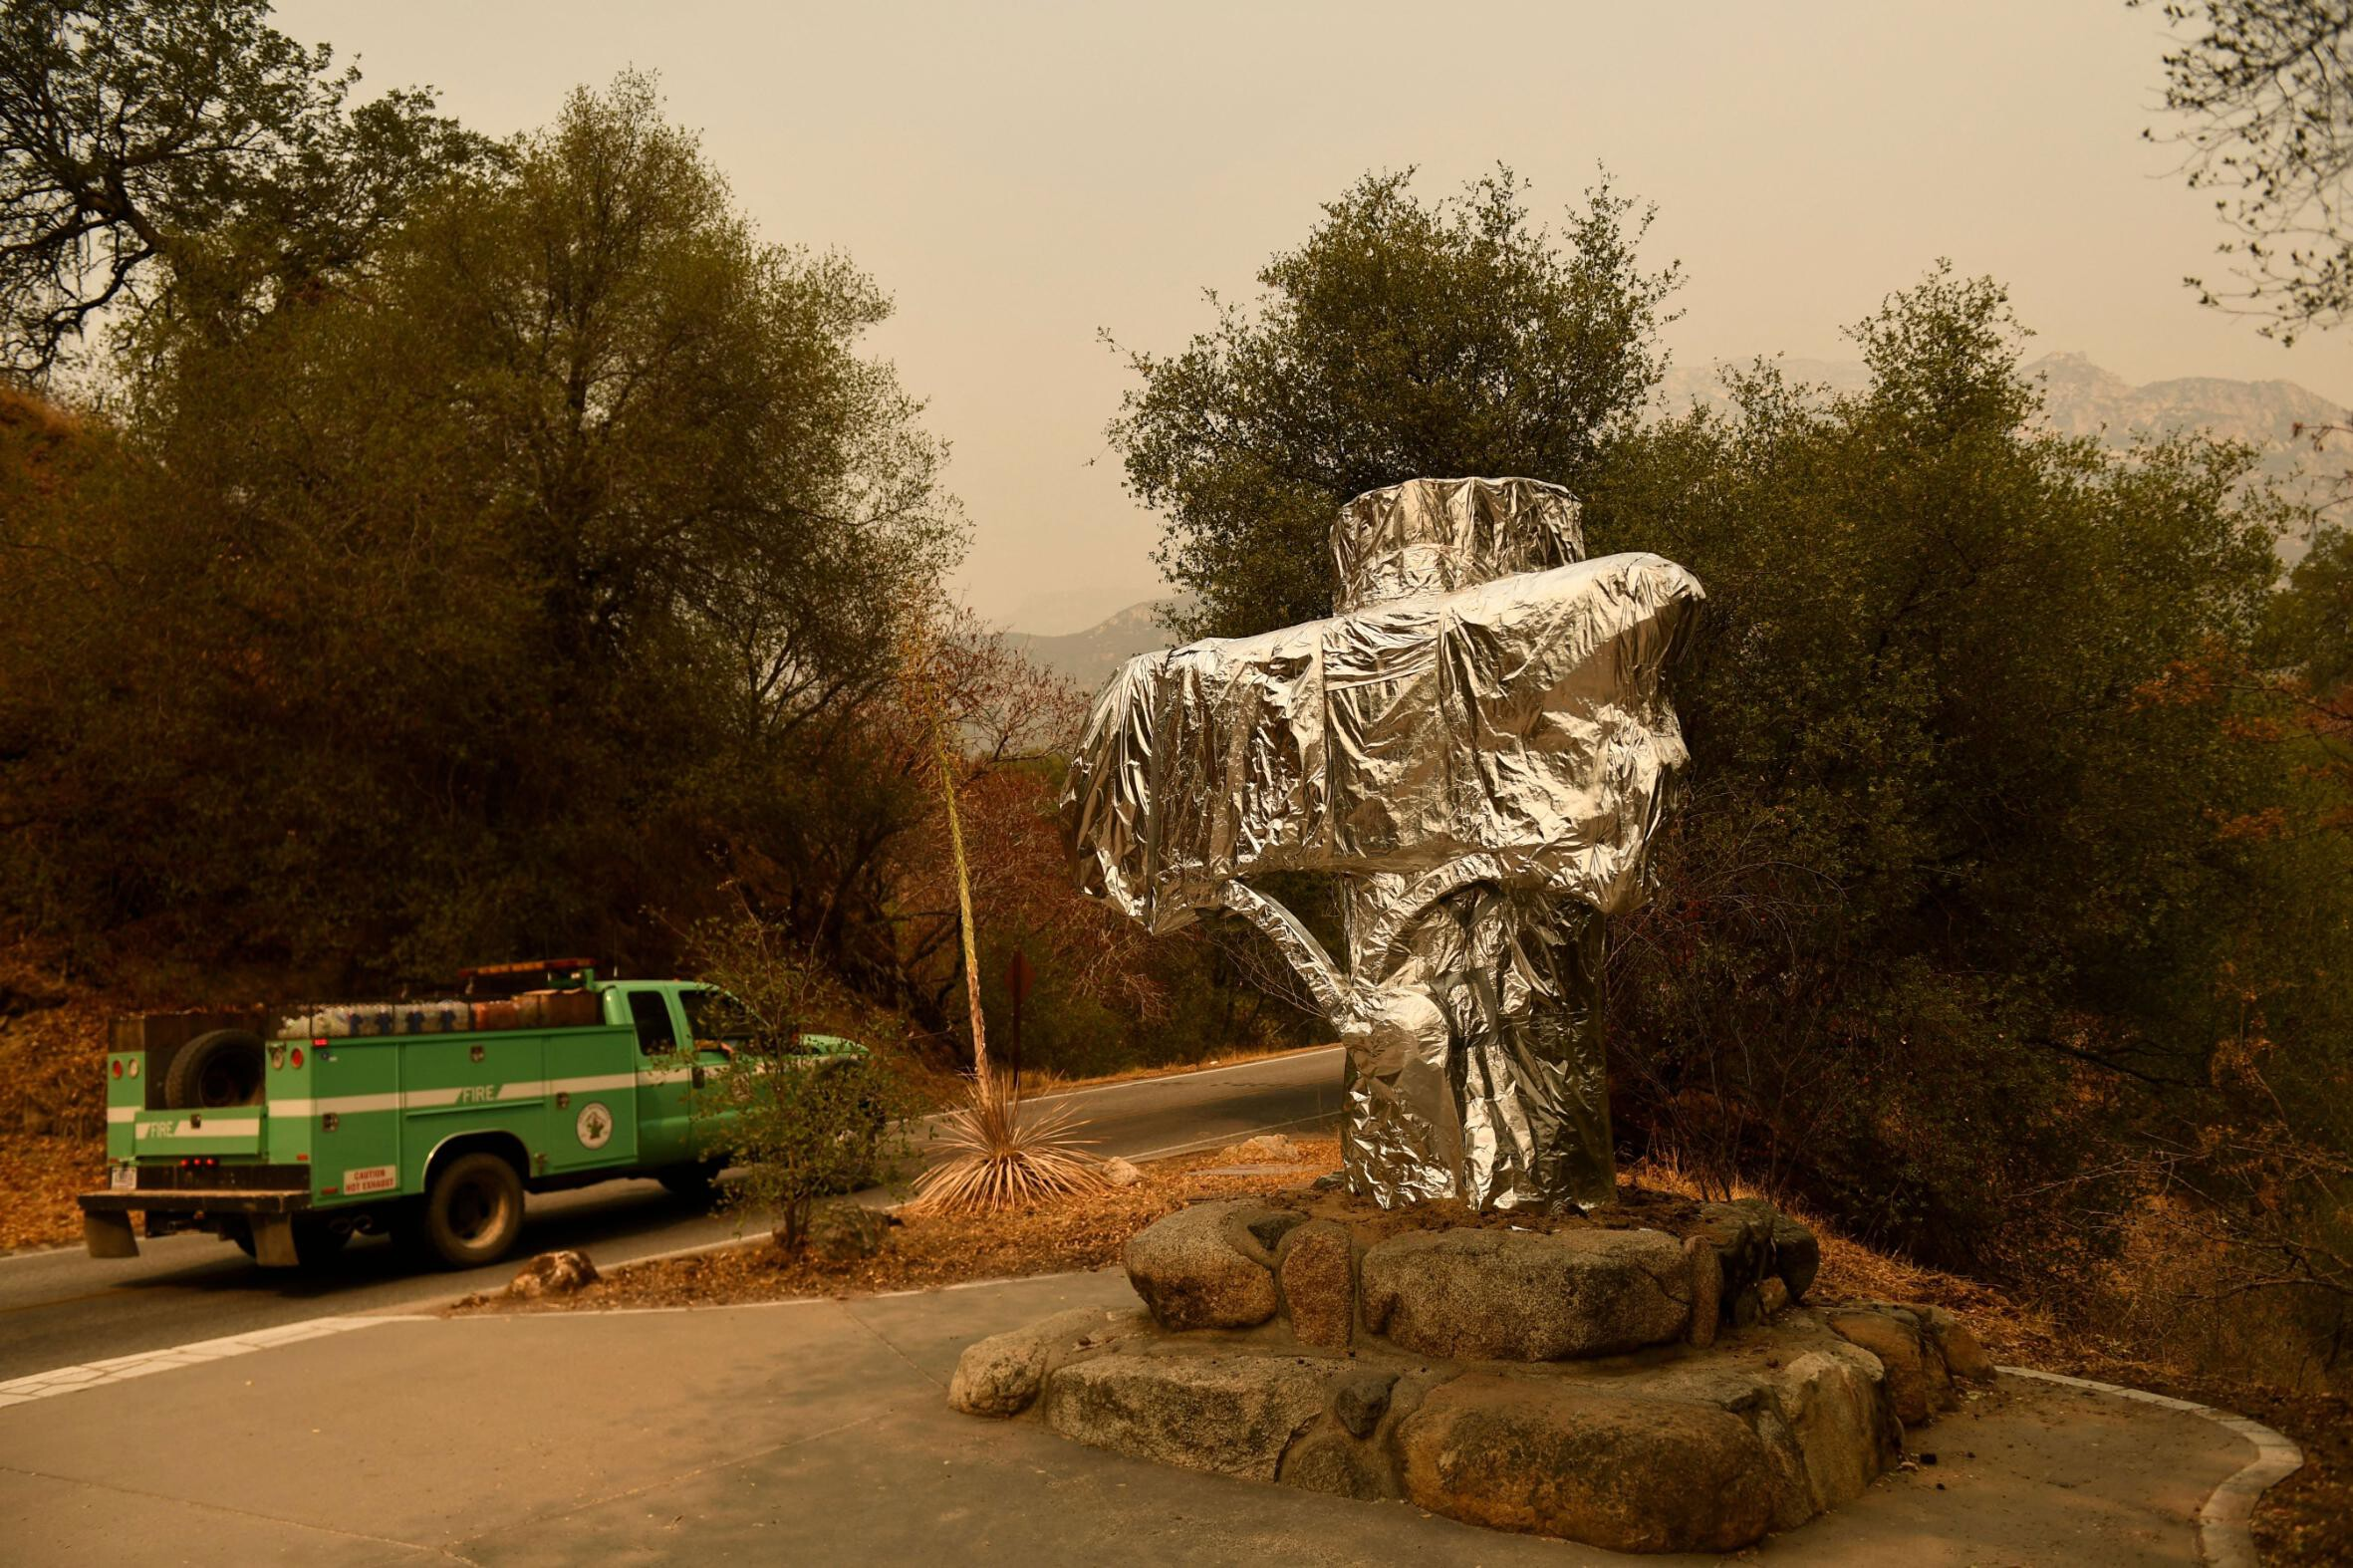 <i>Patrick T. Fallon/AFP/Getty Images</i><br/>A US Forest Service vehicle drives past the Sequoia National Park historic park entrance sign wrapped in fire resistant foil along Generals Highway during a media tour of the KNP Complex fire in the Sequoia National Park near Three Rivers